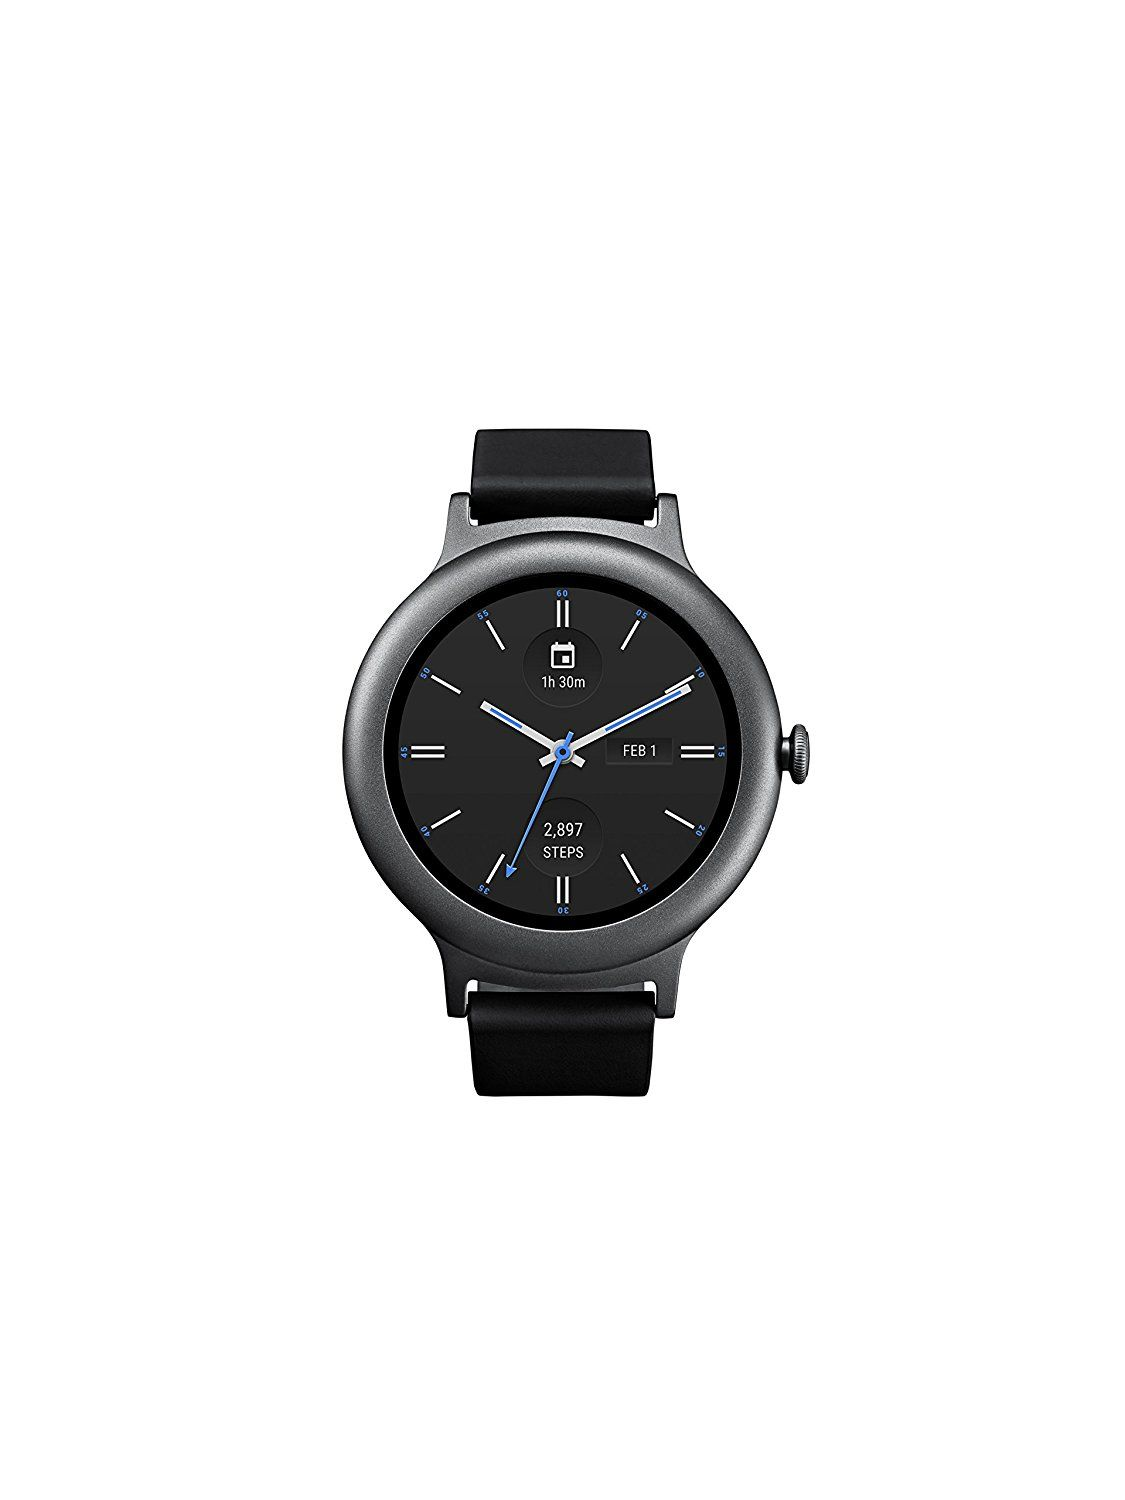 Lg Electronics Lgw270ausatn Watch Style Smartwatch With Android Huawei Smart Stainless Steel Mesh Band Us Warranty Wear Titanium Version Size Large